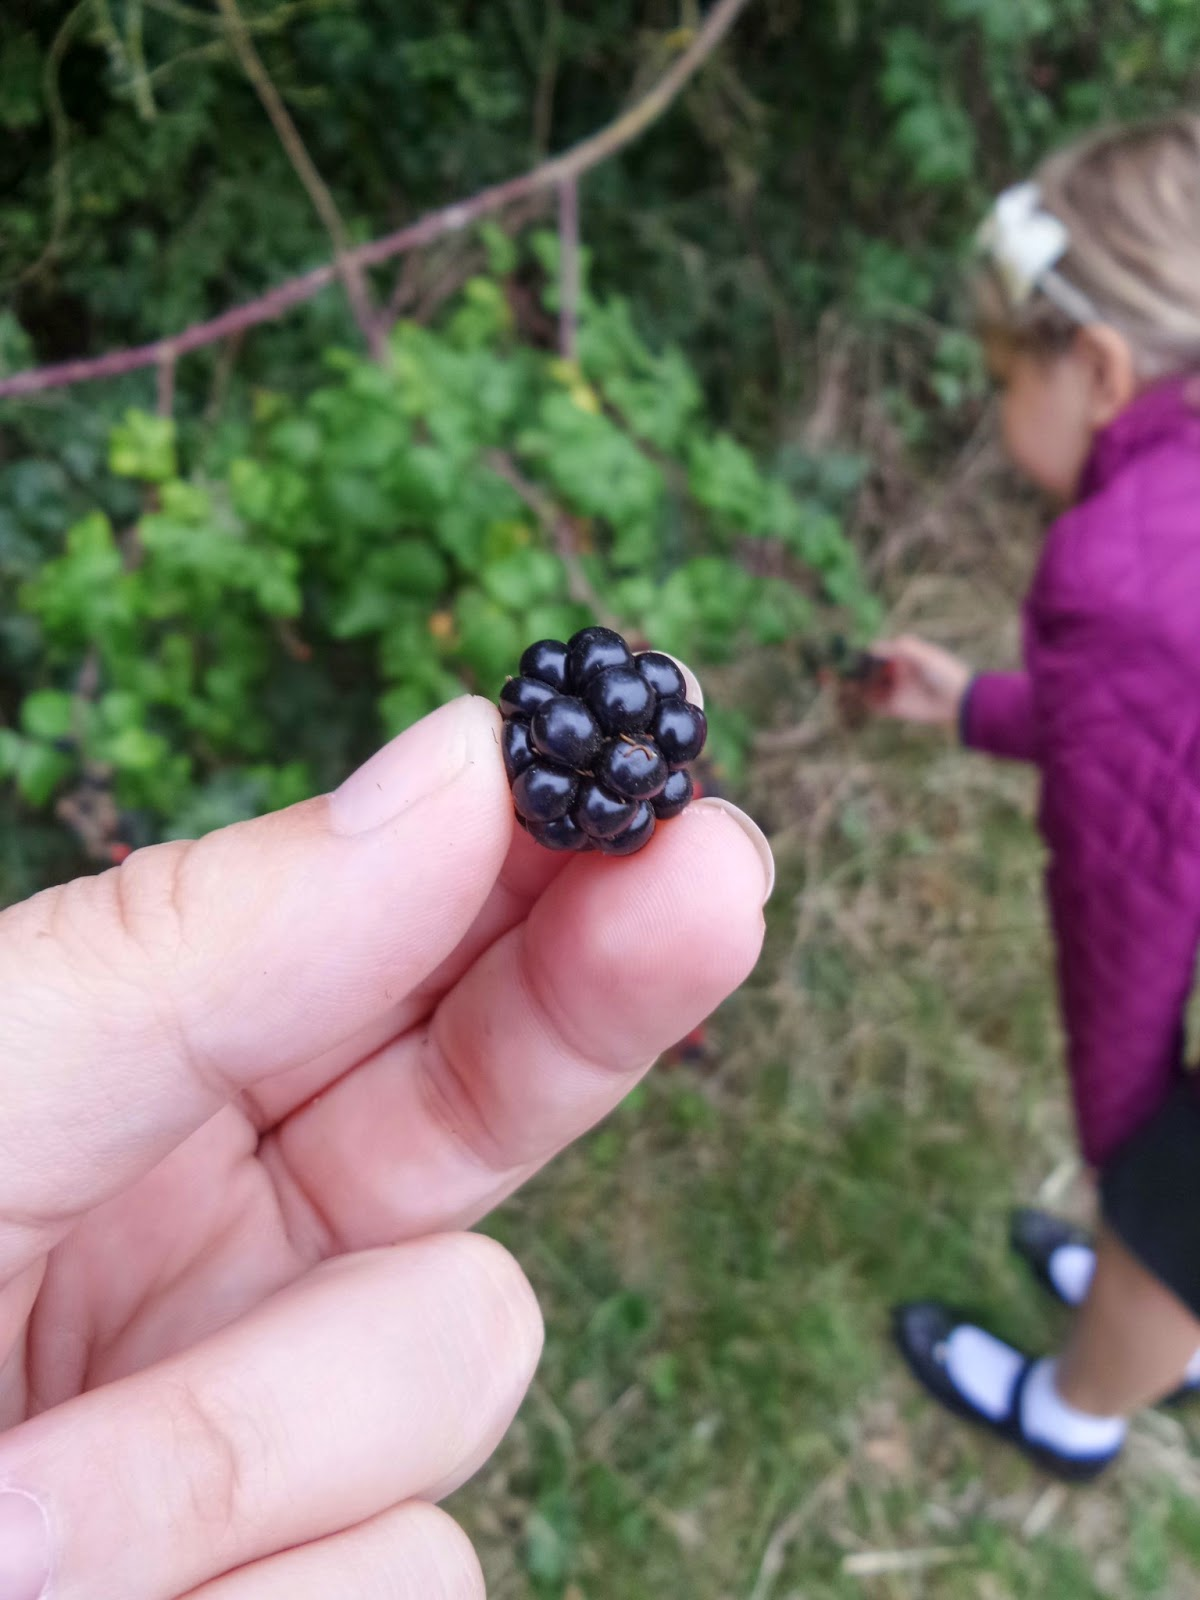 A picked blackberry